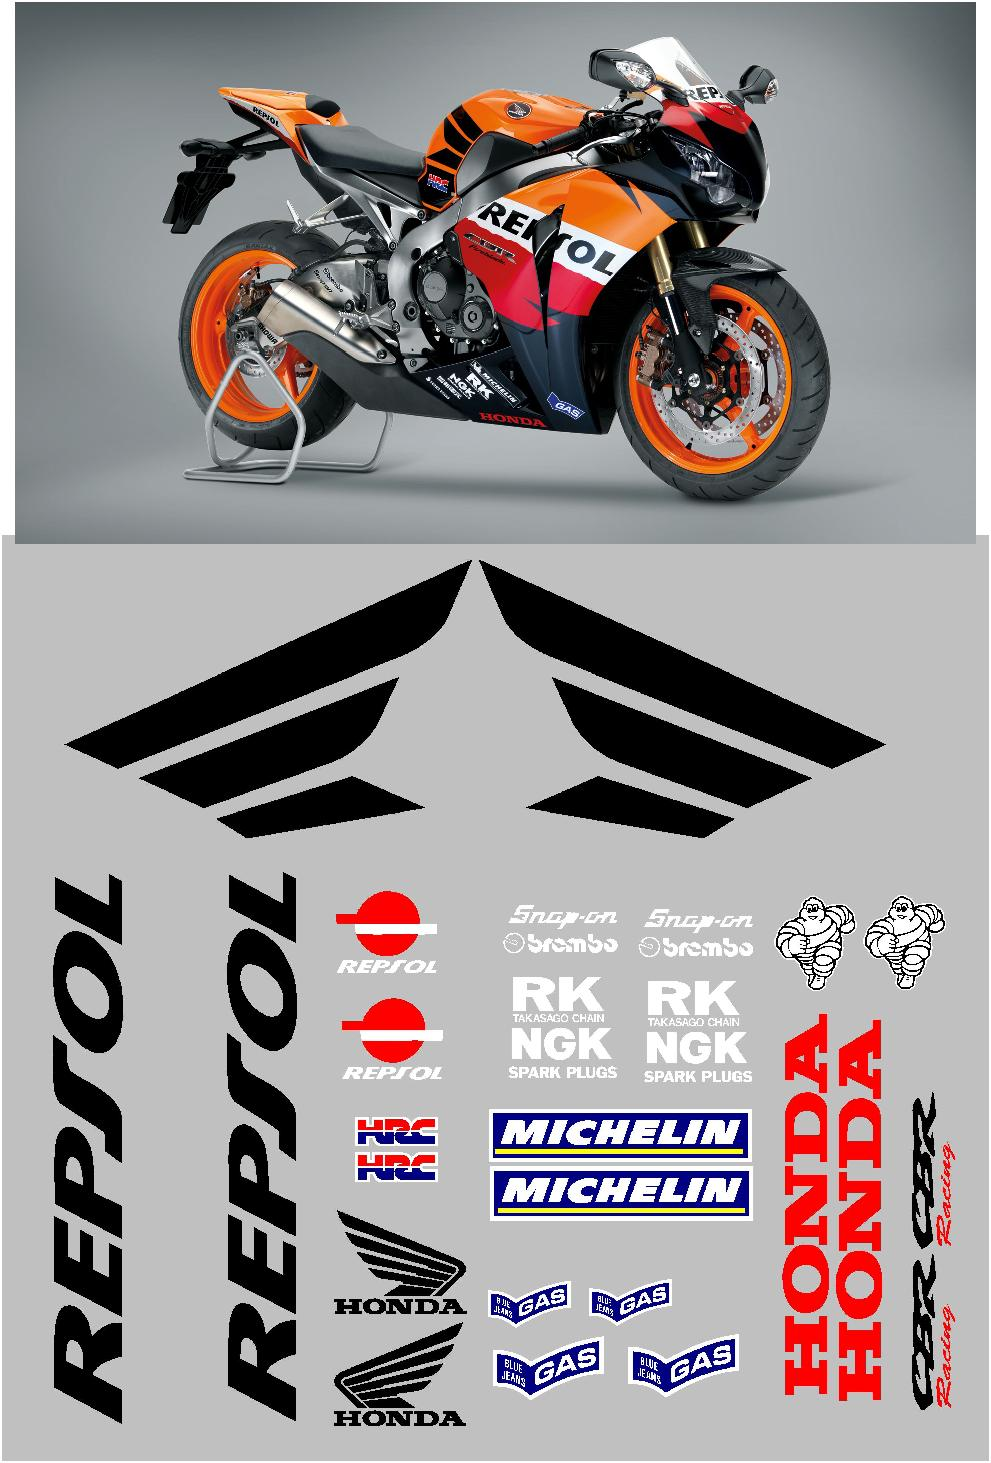 cruiser bikes motorcycle stickers motorcycle decal kits - HD991×1463